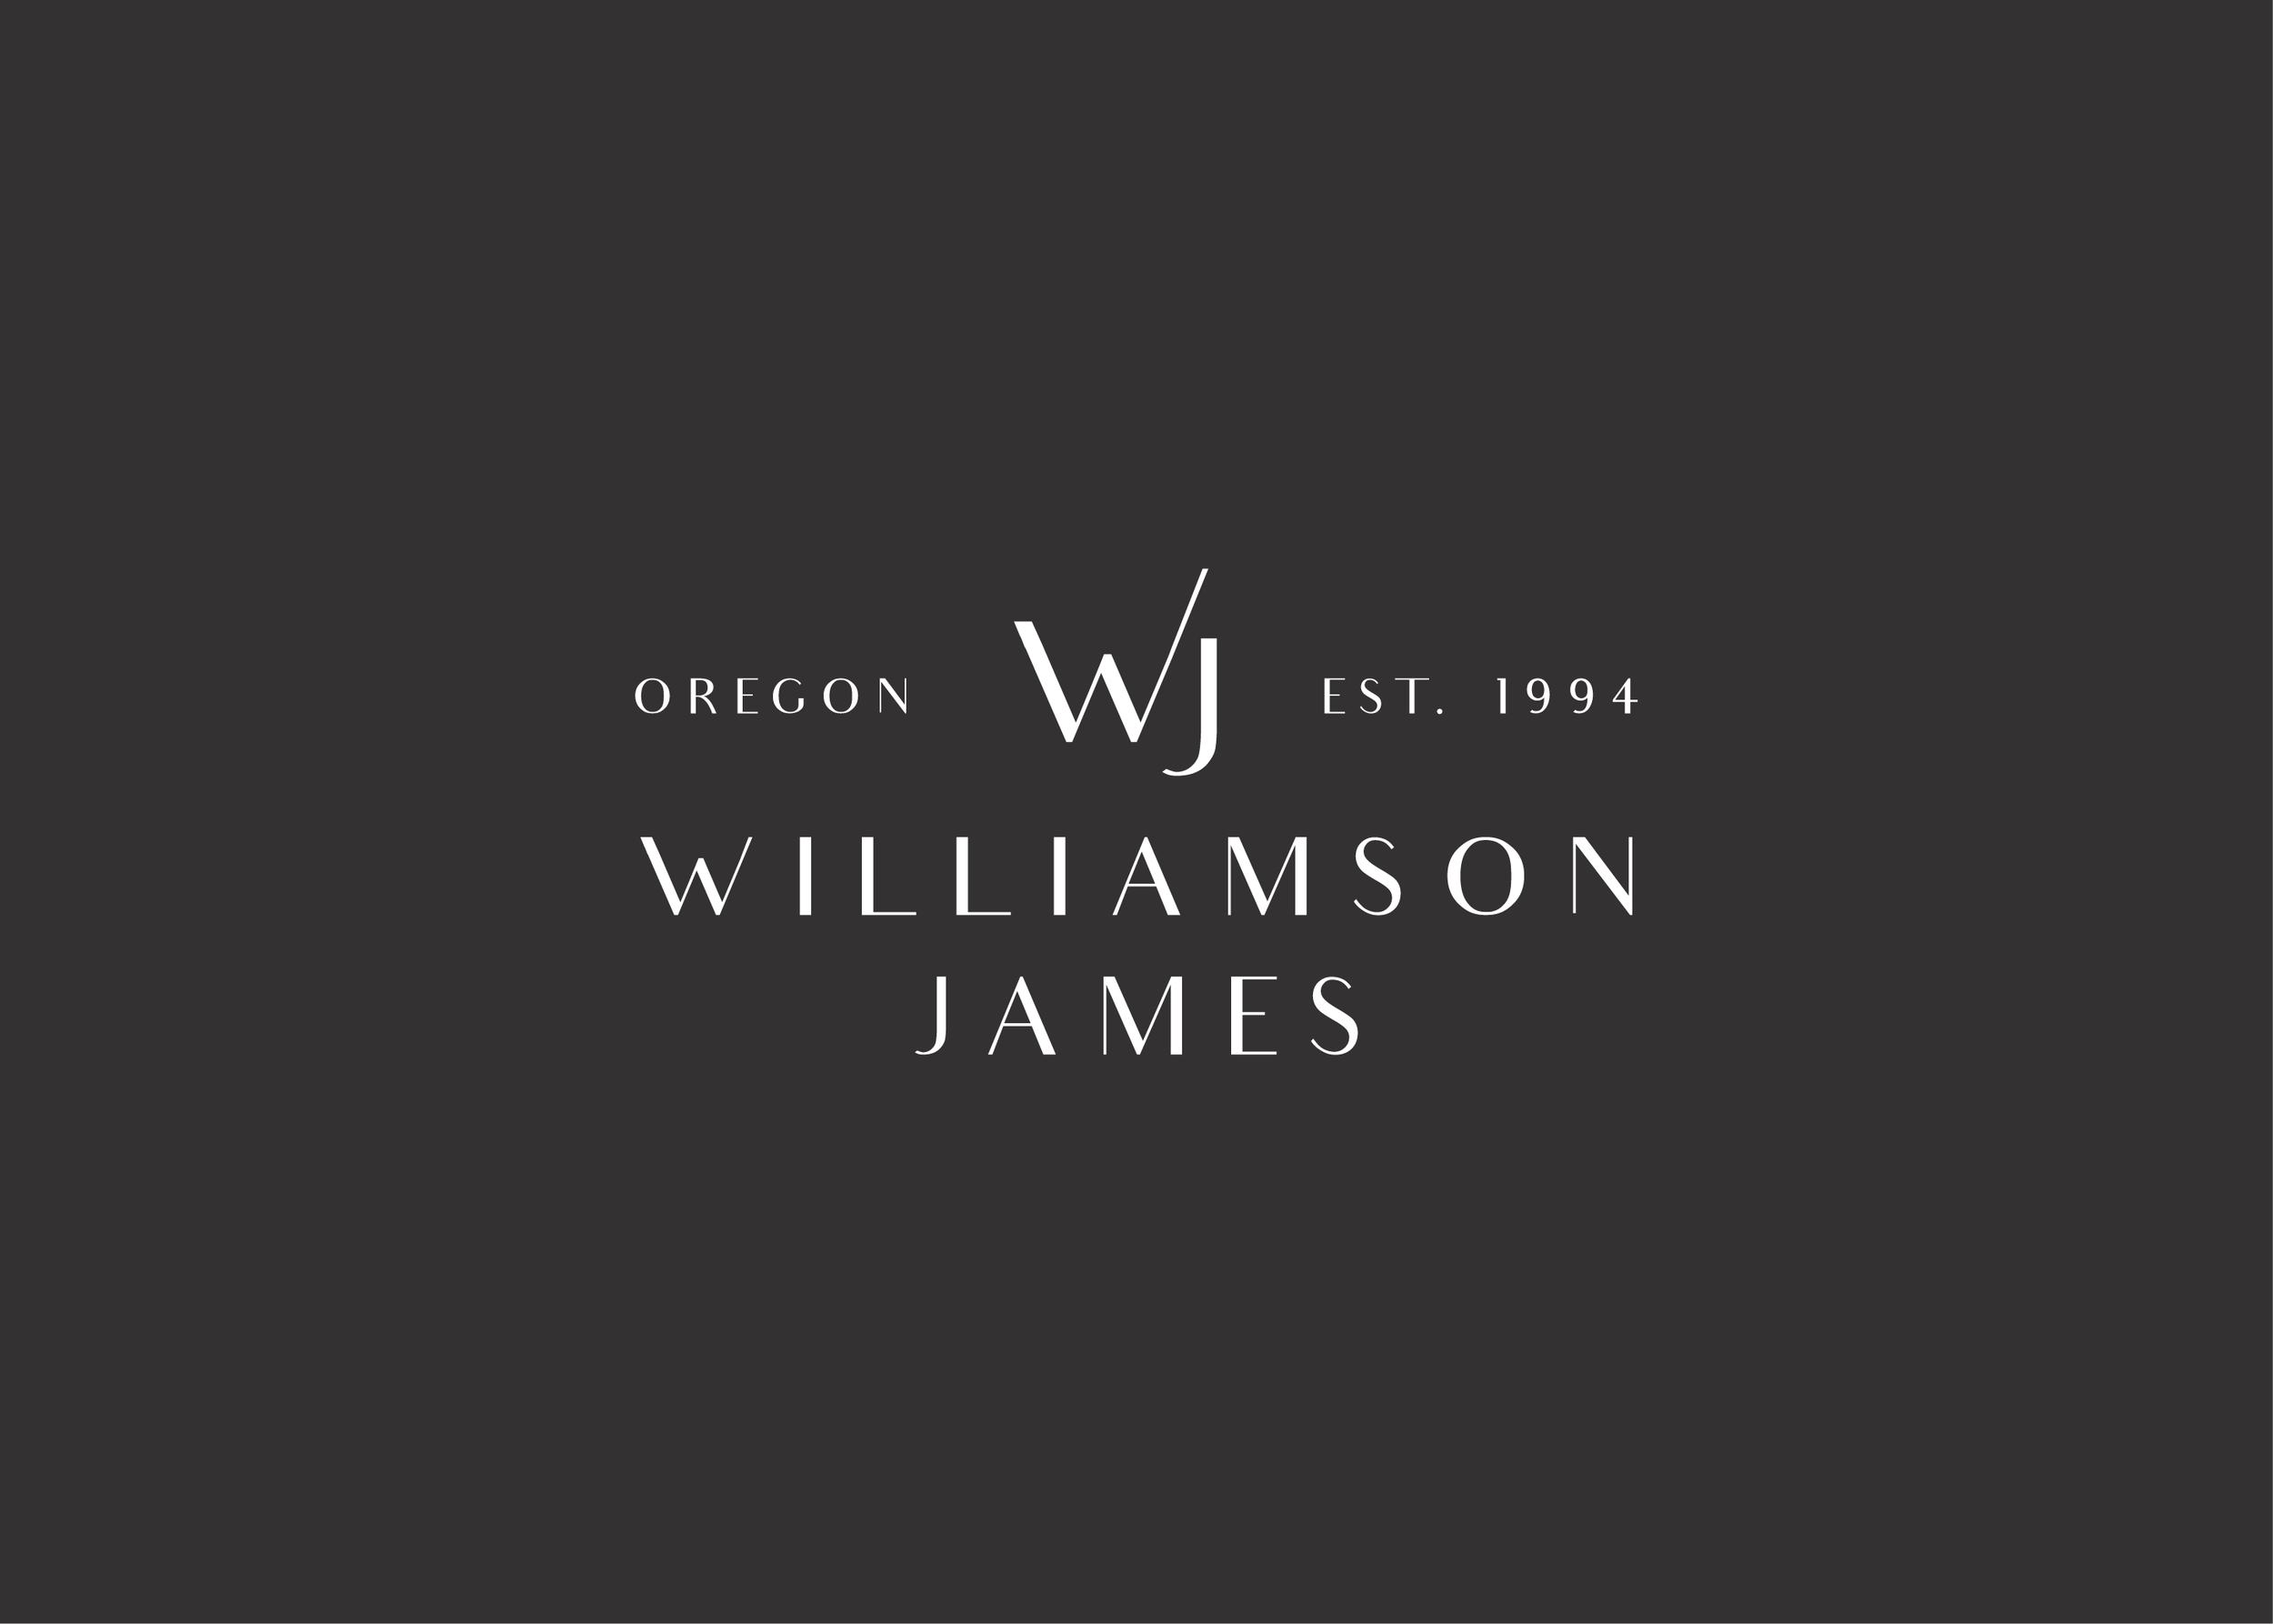 WILLIAMSON JAMES HOMES